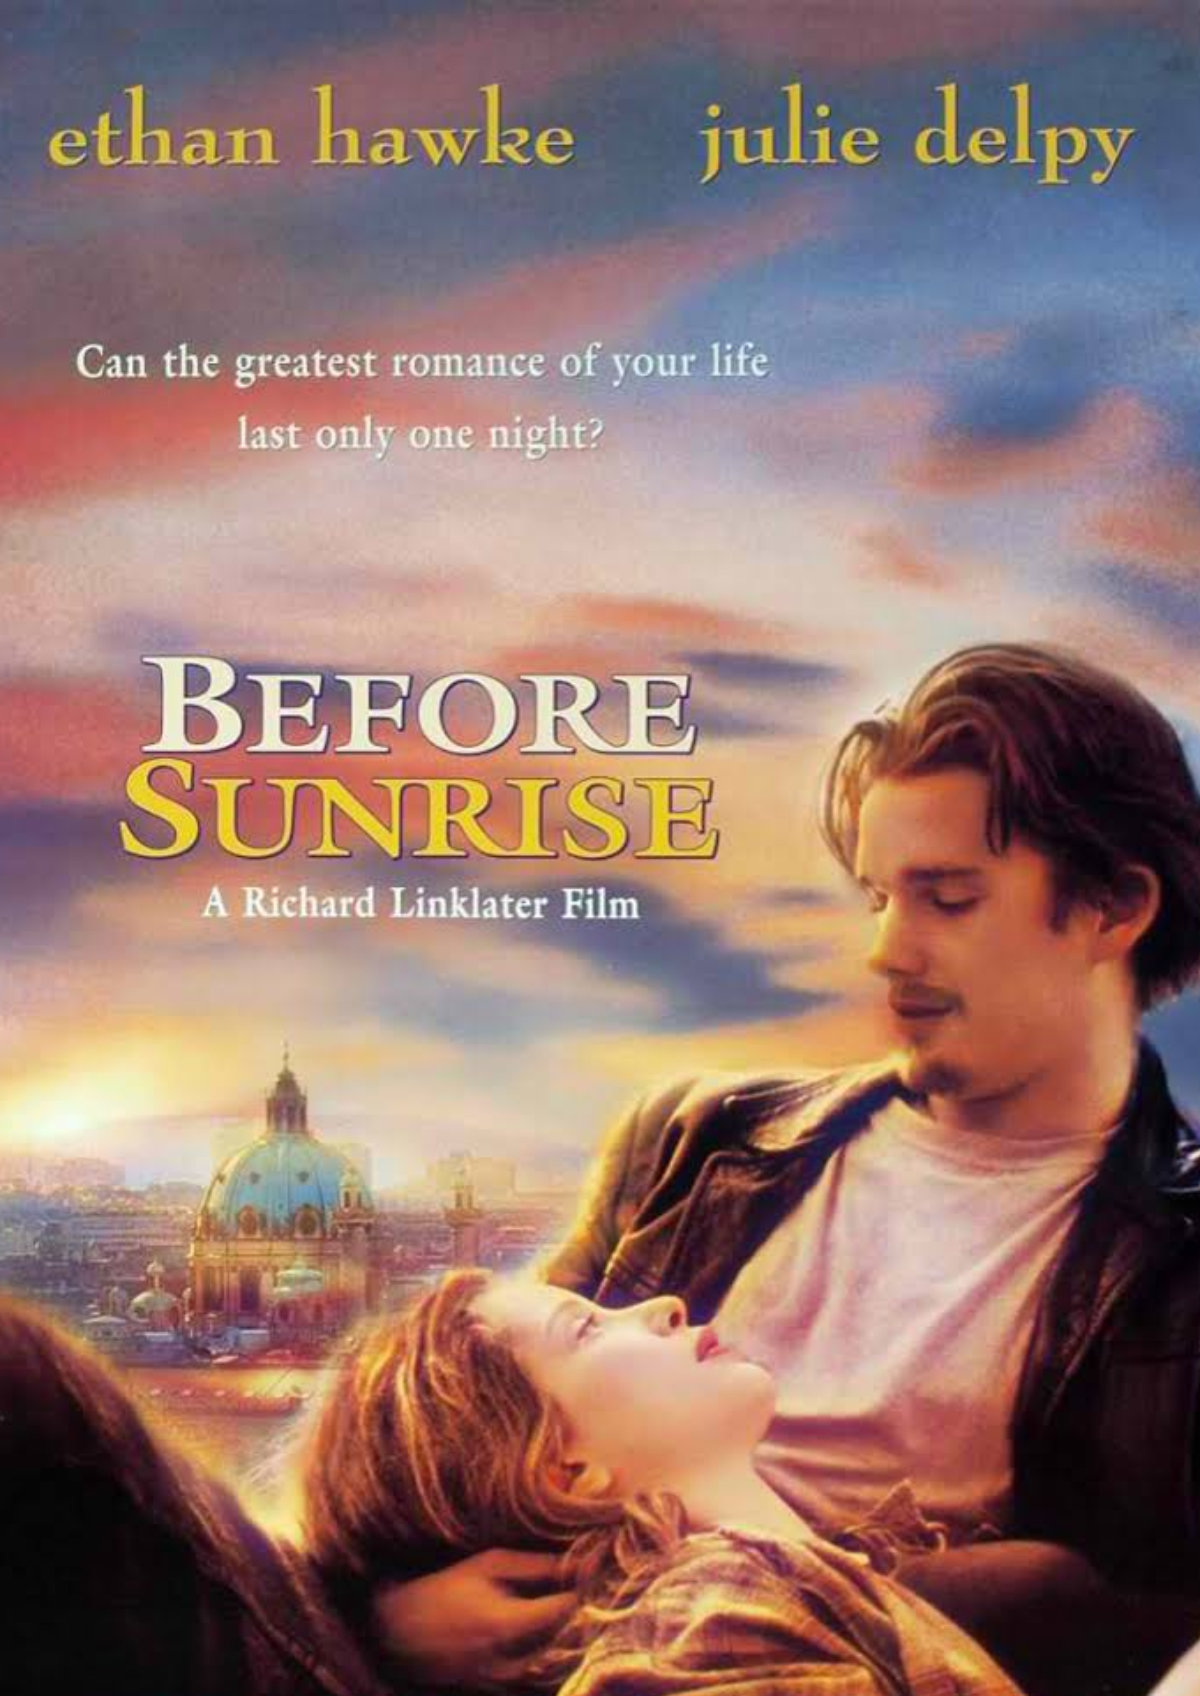 'Before Sunrise' movie poster